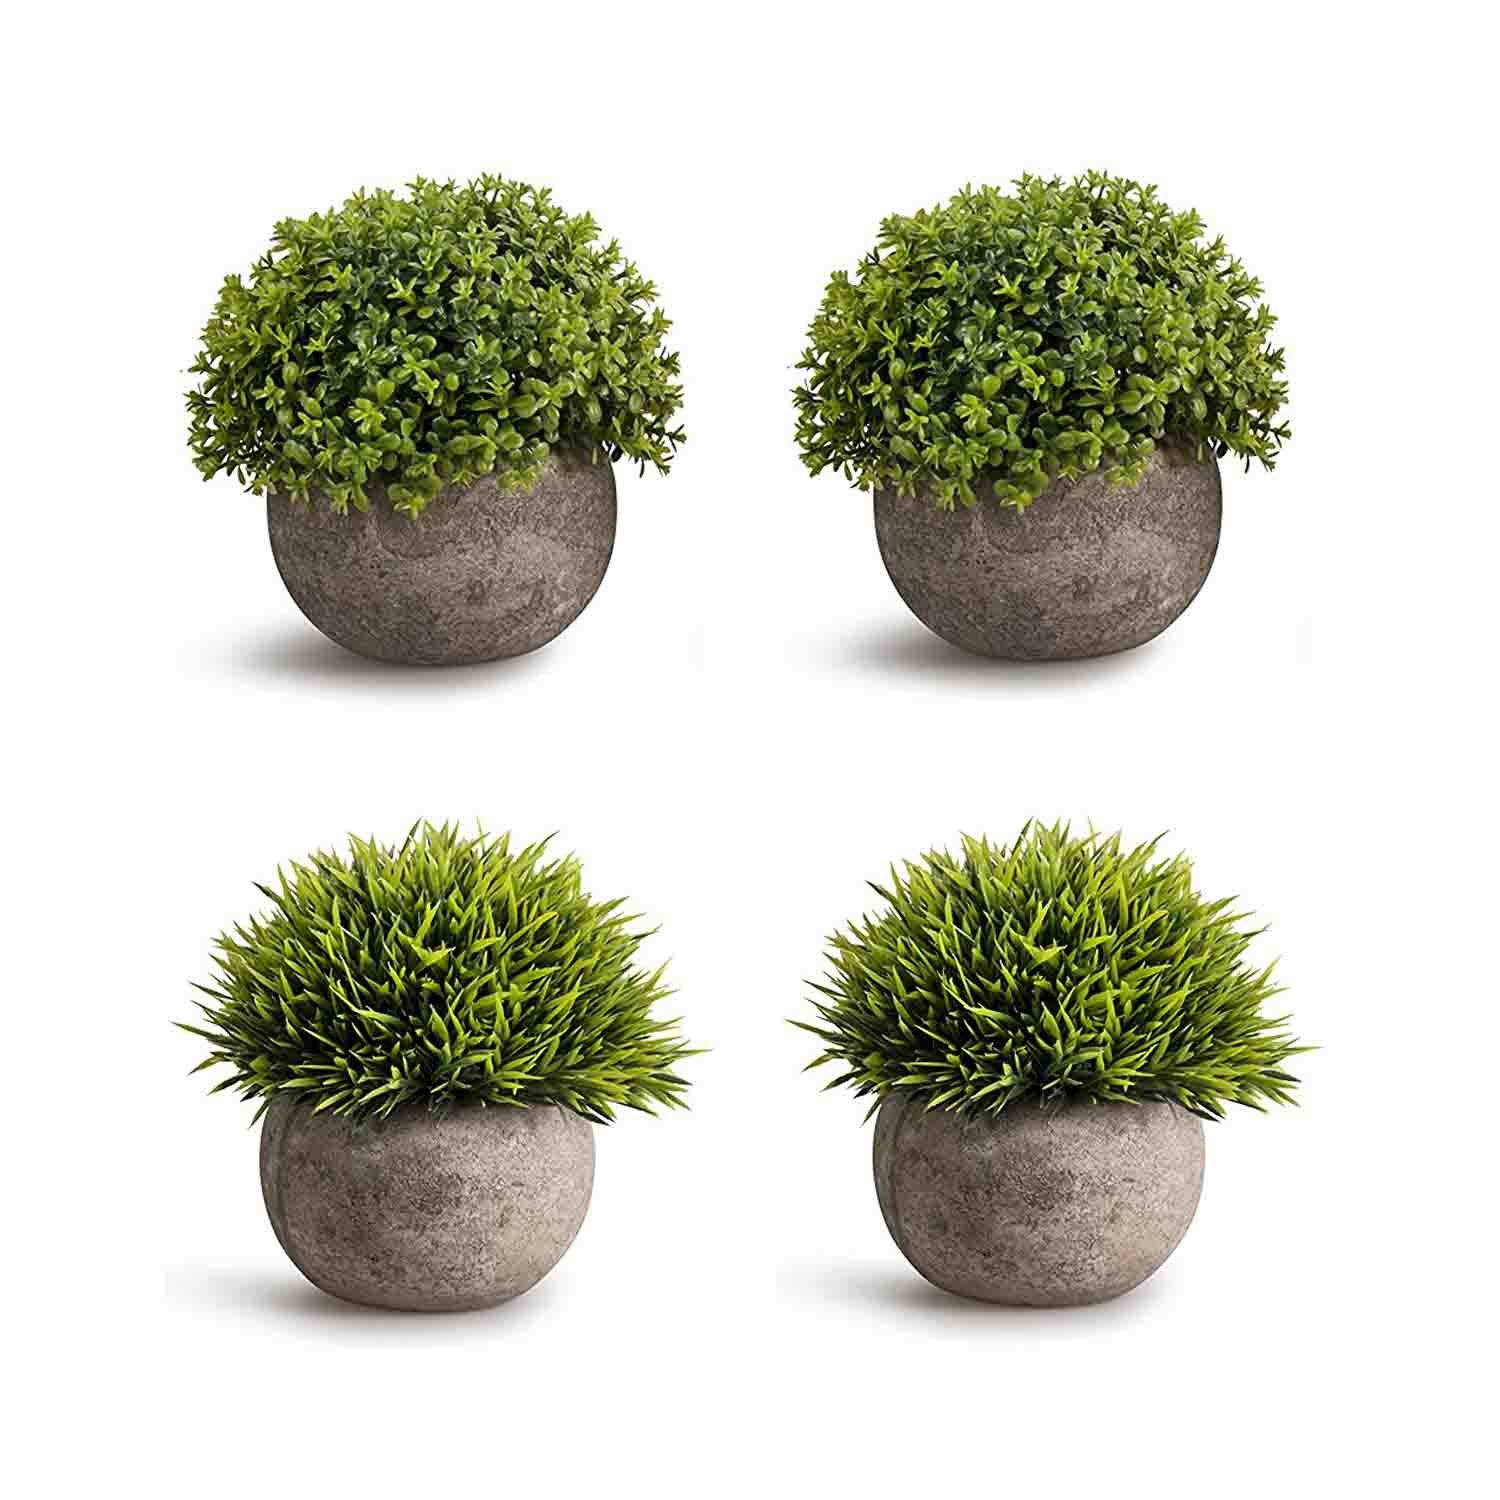 CEWOR 4 Pack Artificial Mini Plants Plastic Mini Plants Topiary Shrubs Fake Plants for Bathroom,House Decorations (Green) by CEWOR